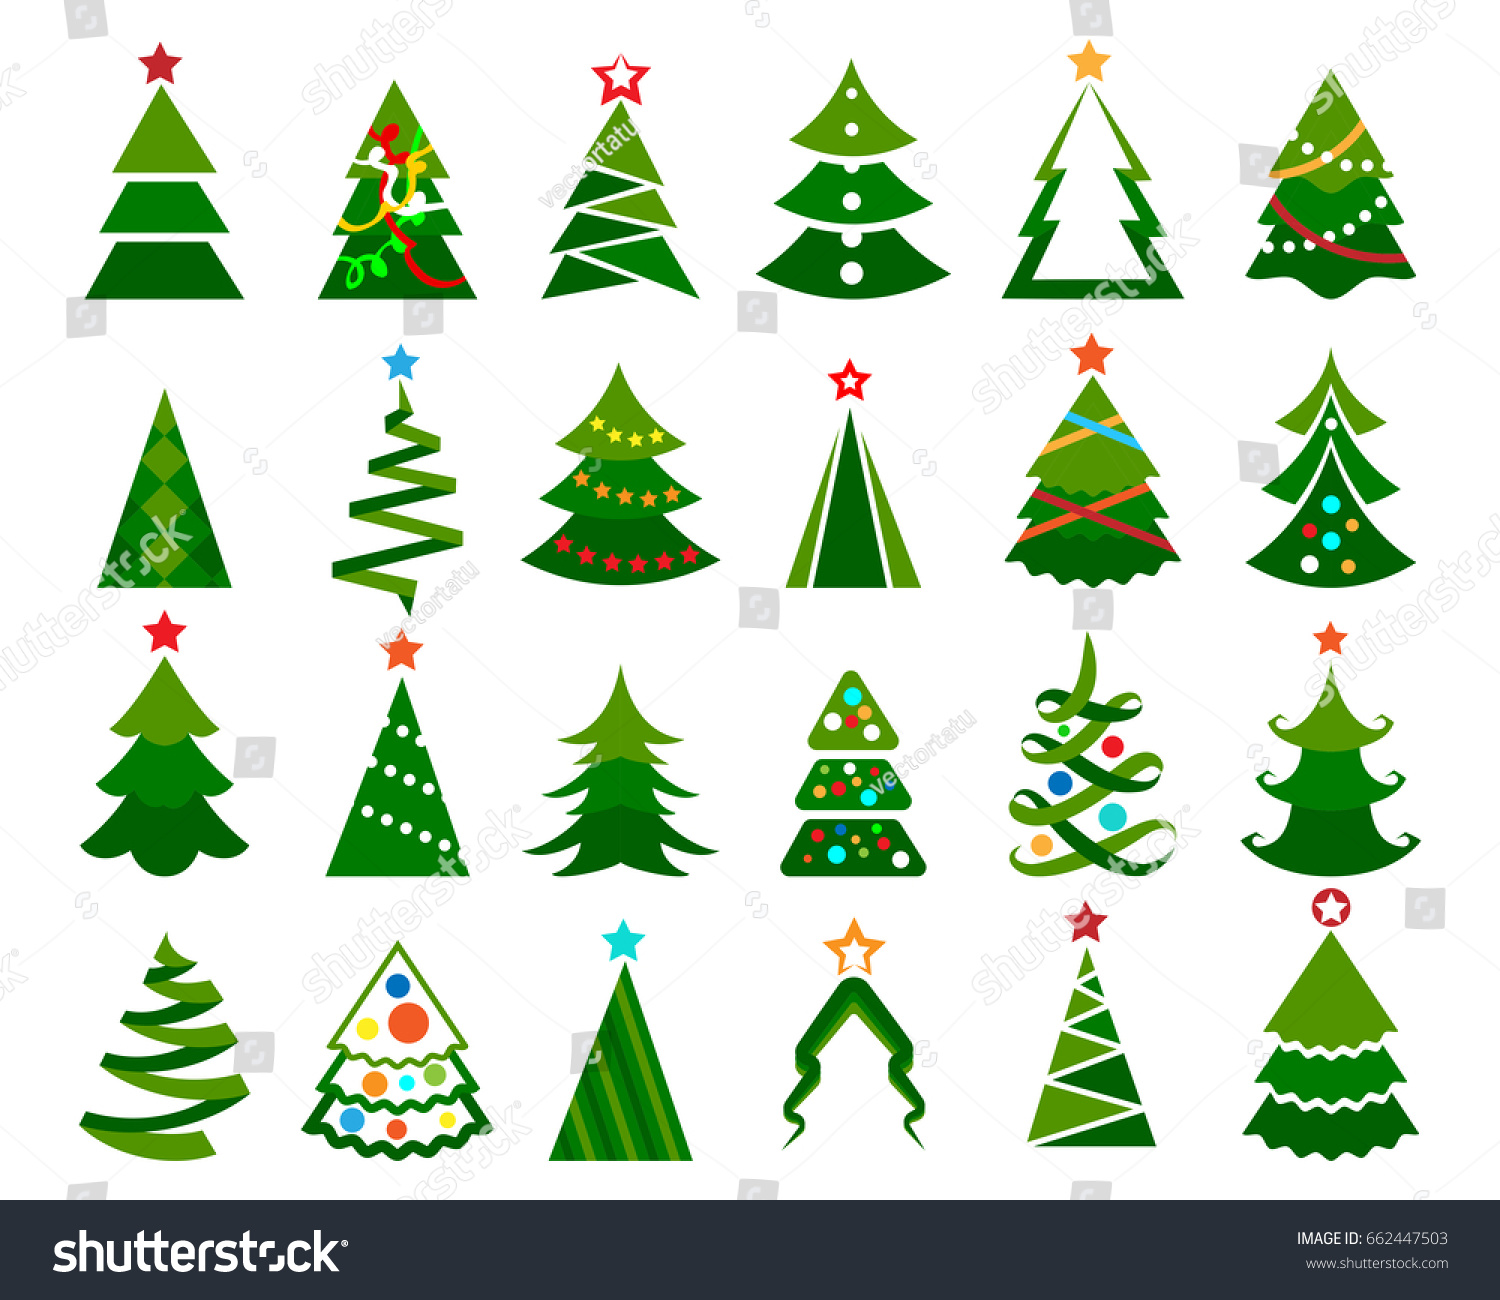 Christmas Tree Vector Set Cartoon Colored Stock Vector 662447503 ...